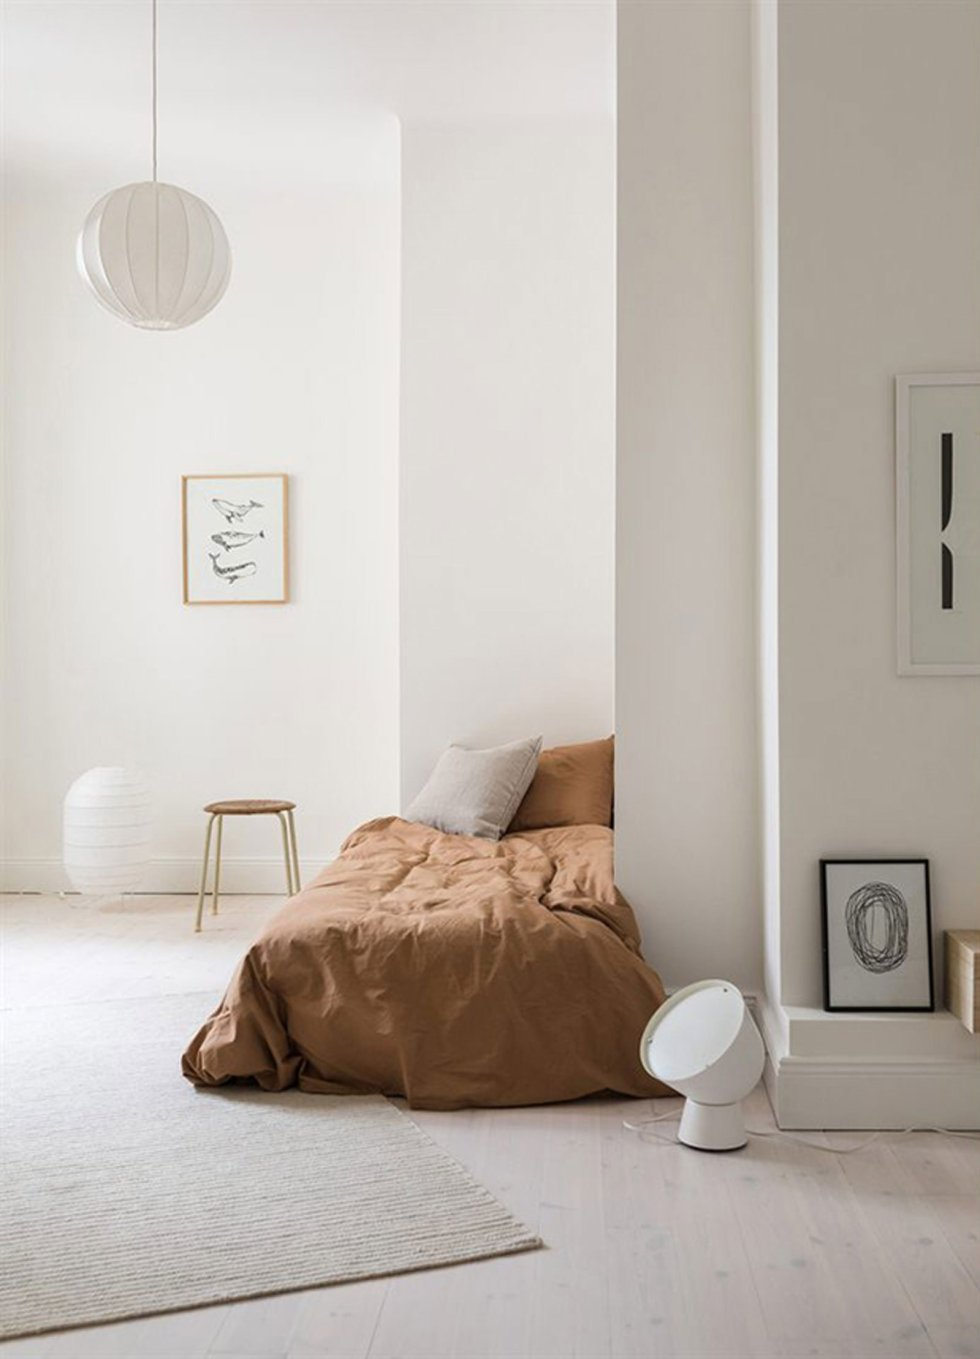 a simplistic Scandinavian bedroom with a low corner bed, a stool, some art and paper lamps feels airy and serene